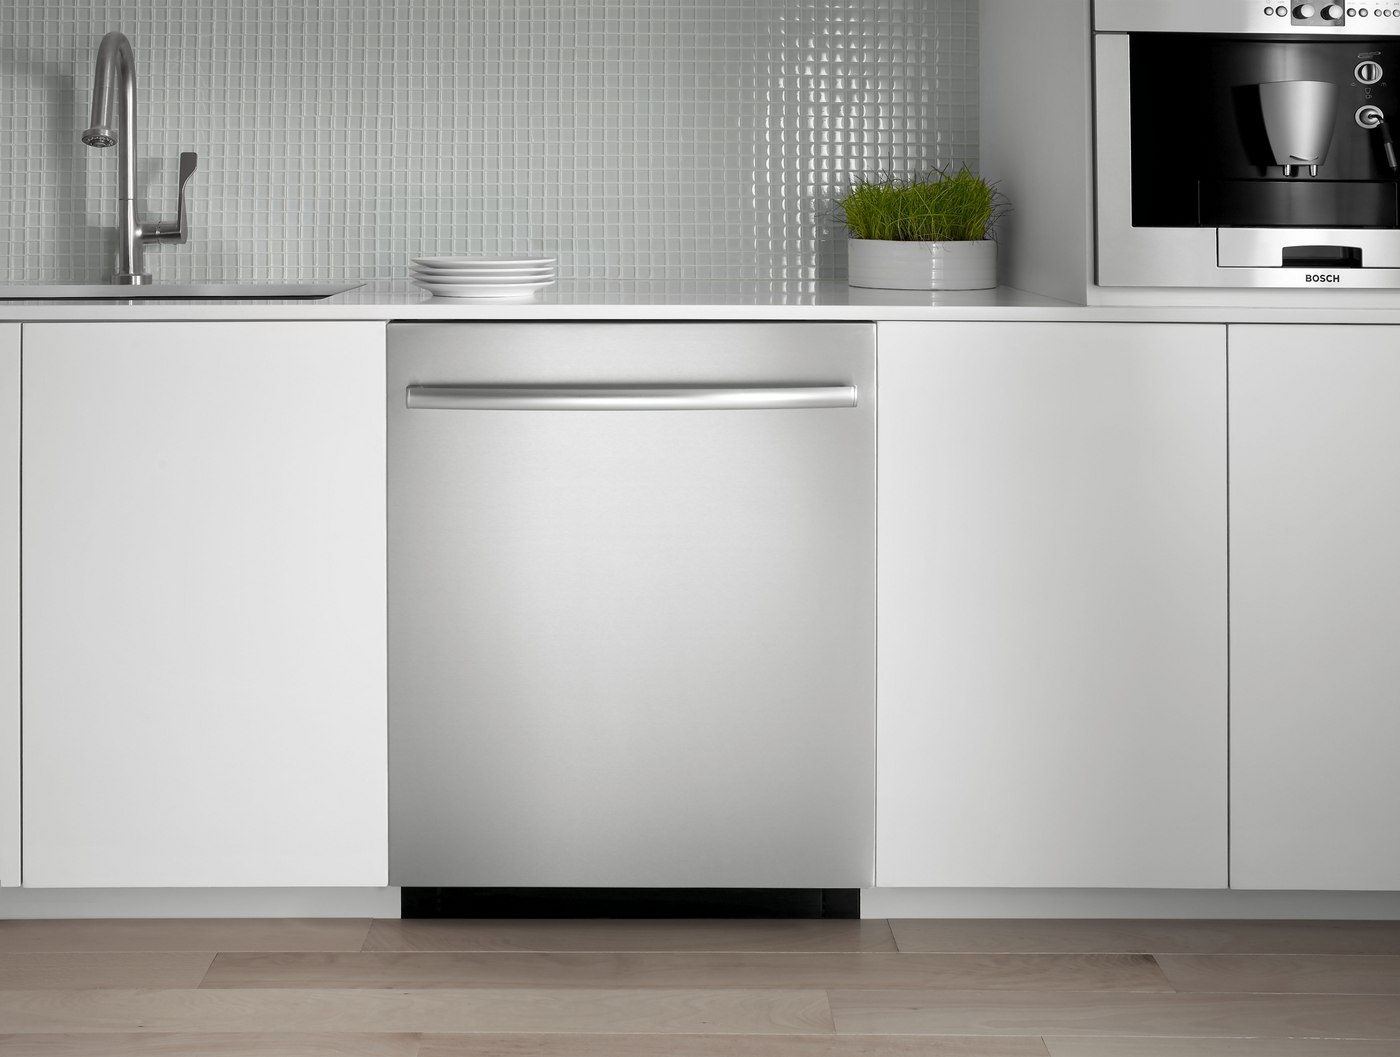 American Style vs. European Style Dishwashers (Reviews / Ratings)